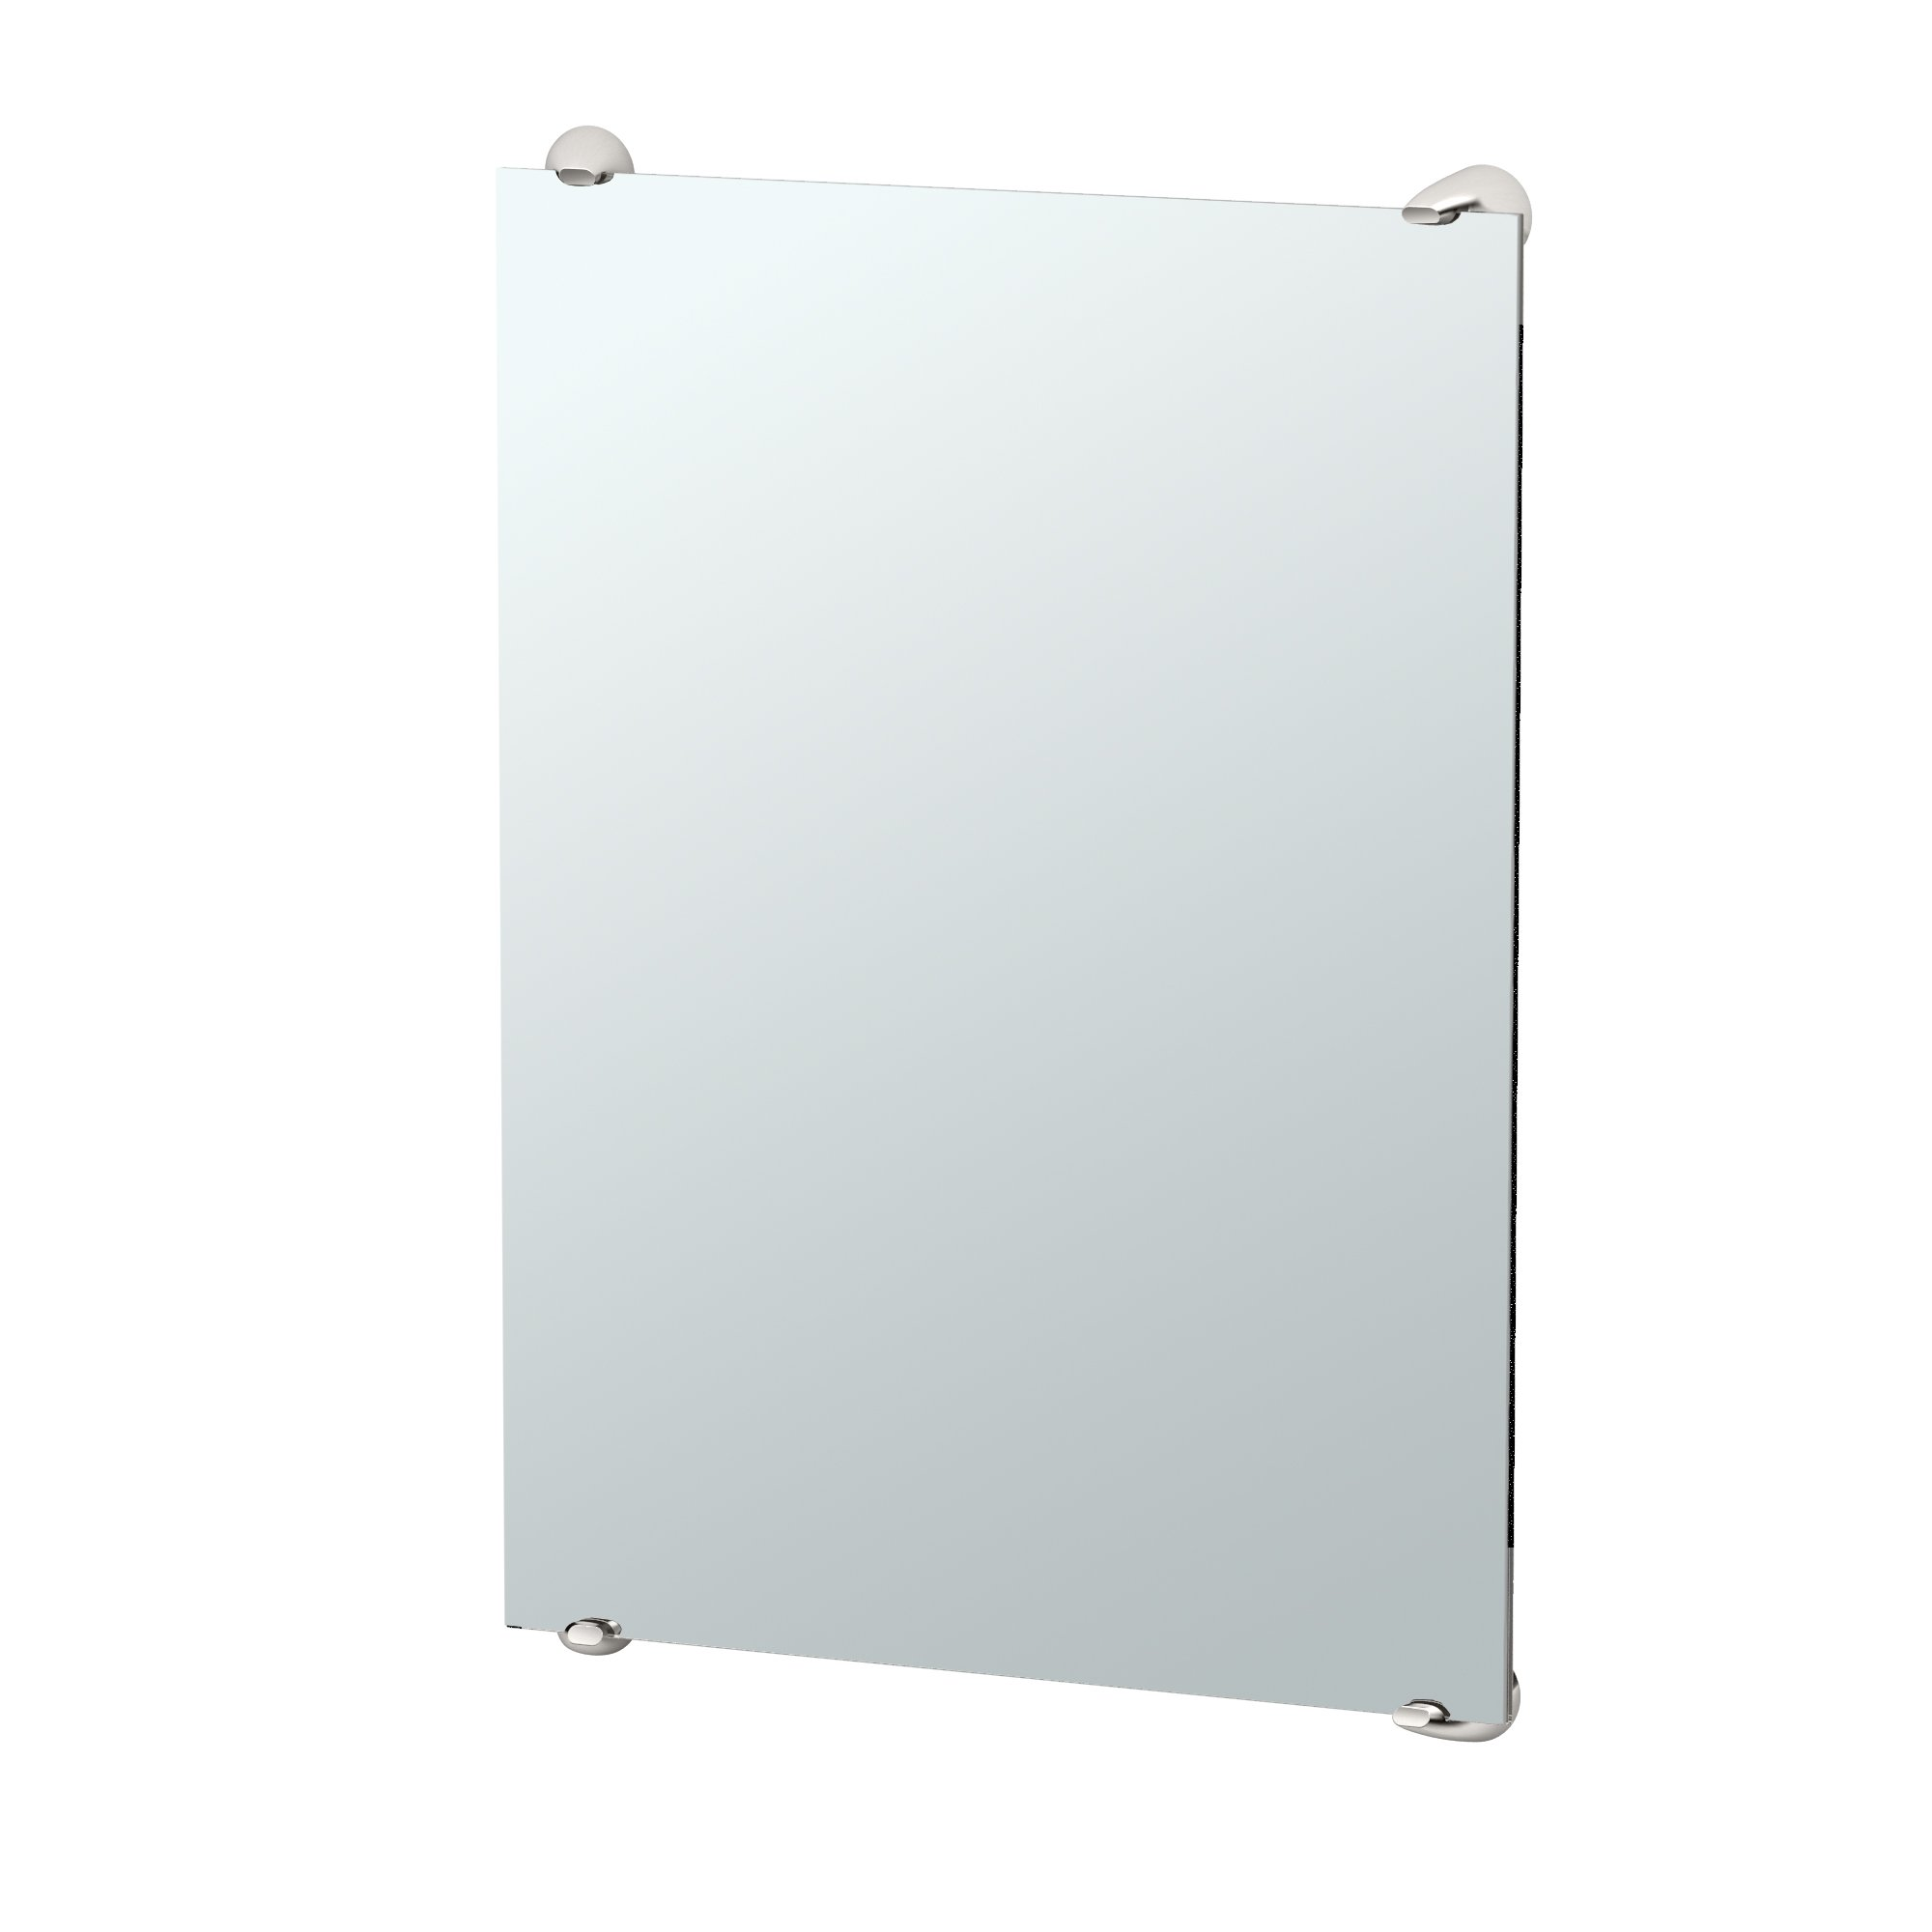 Gatco 1593 Brie Minimalist Bathroom Fixed Mounted Mirror, 30'', Satin Nickel